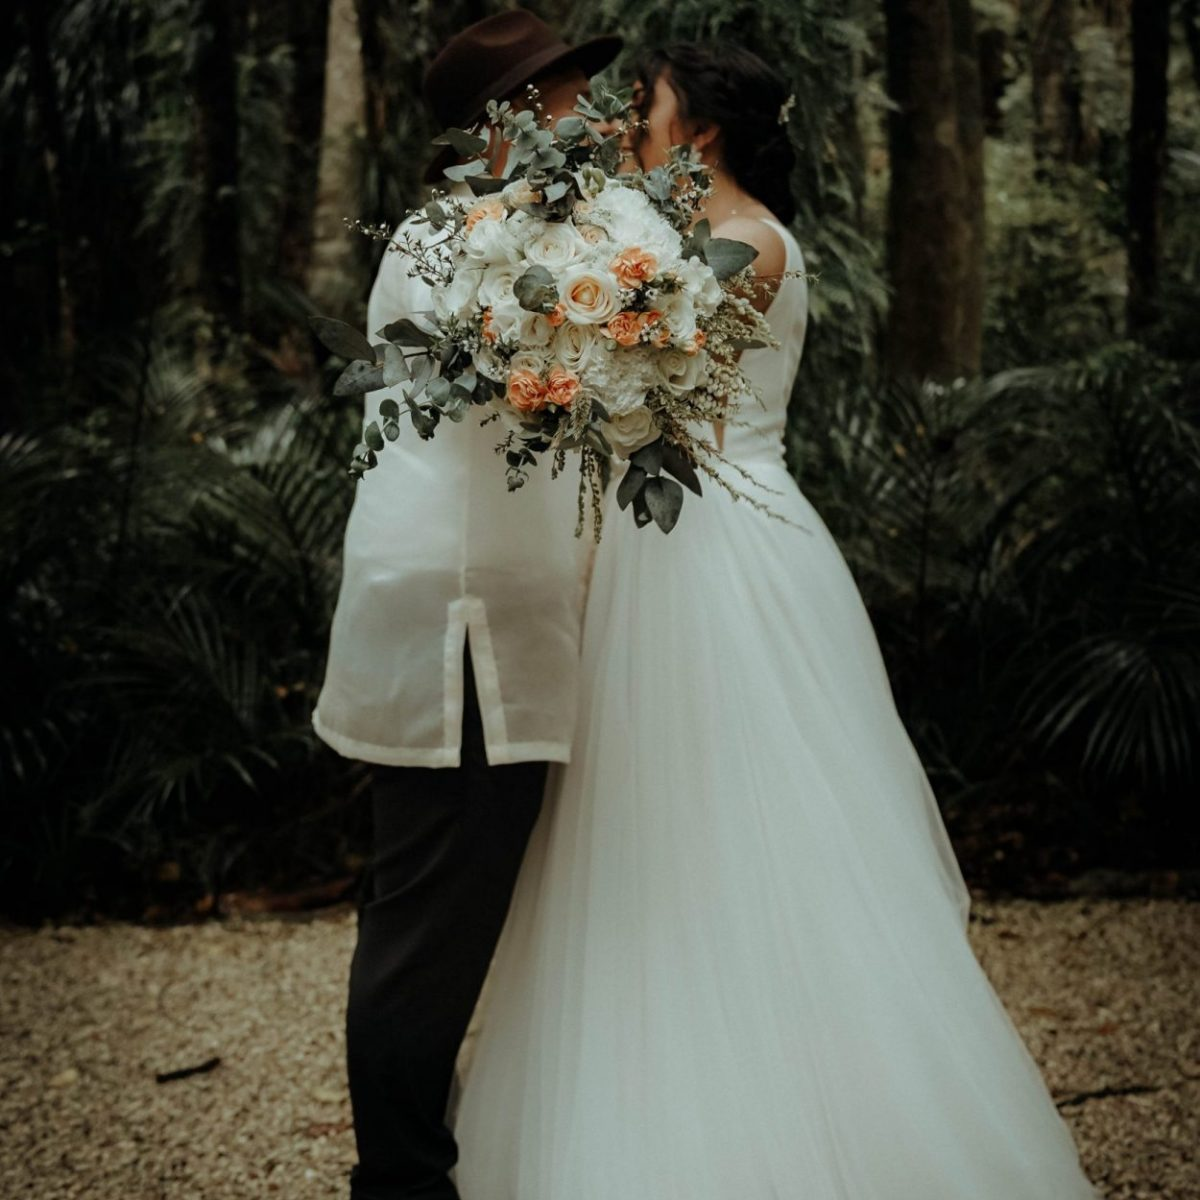 the couple is kissing each other and hiding it with flowers, Wedding Photography Auckland